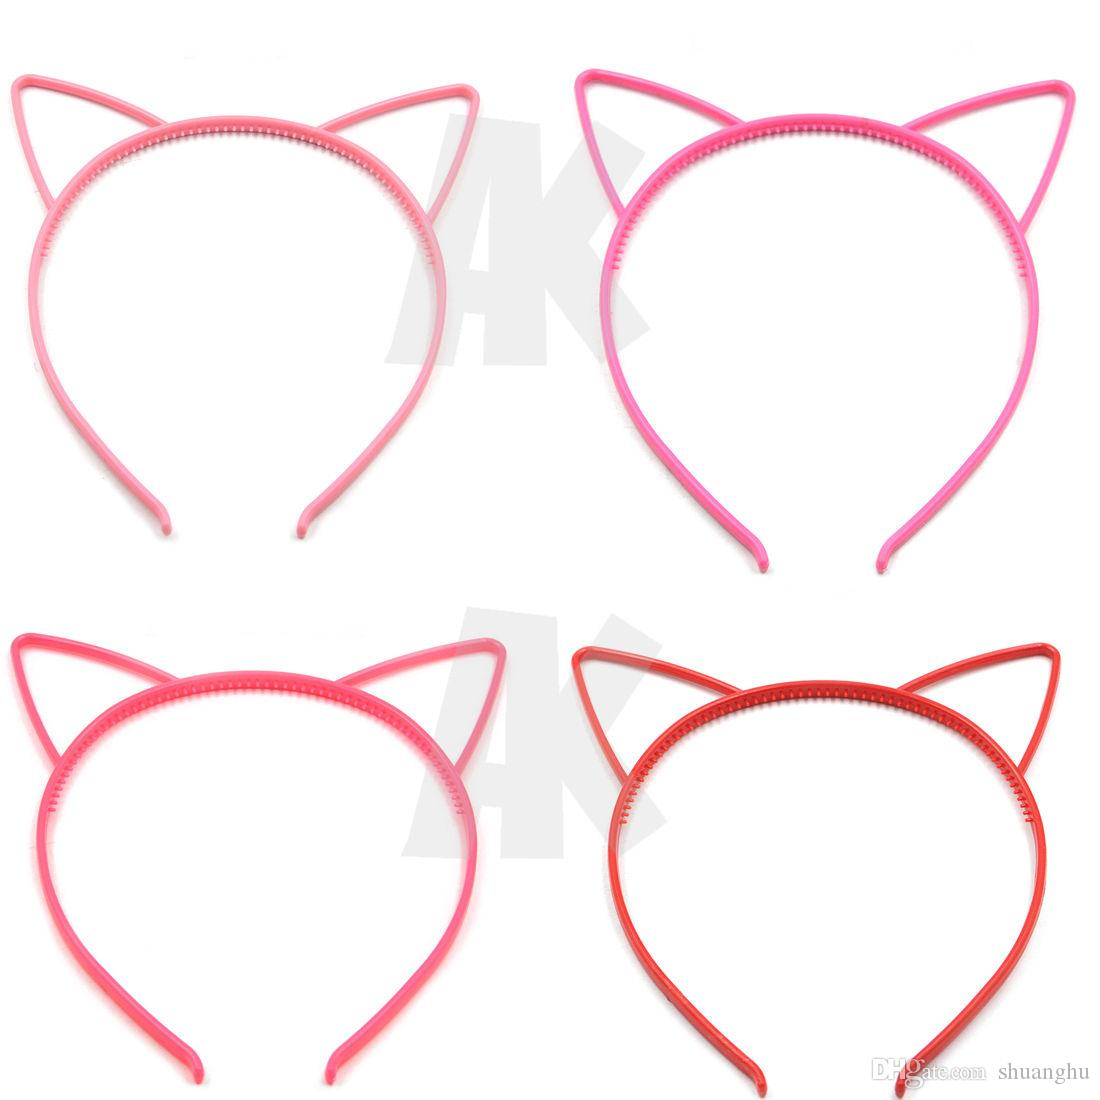 Venta al por mayor Colores mezclados Wowen Girl Kids Plastics Diadema Banda para el cabello Cat Ear Dress Party